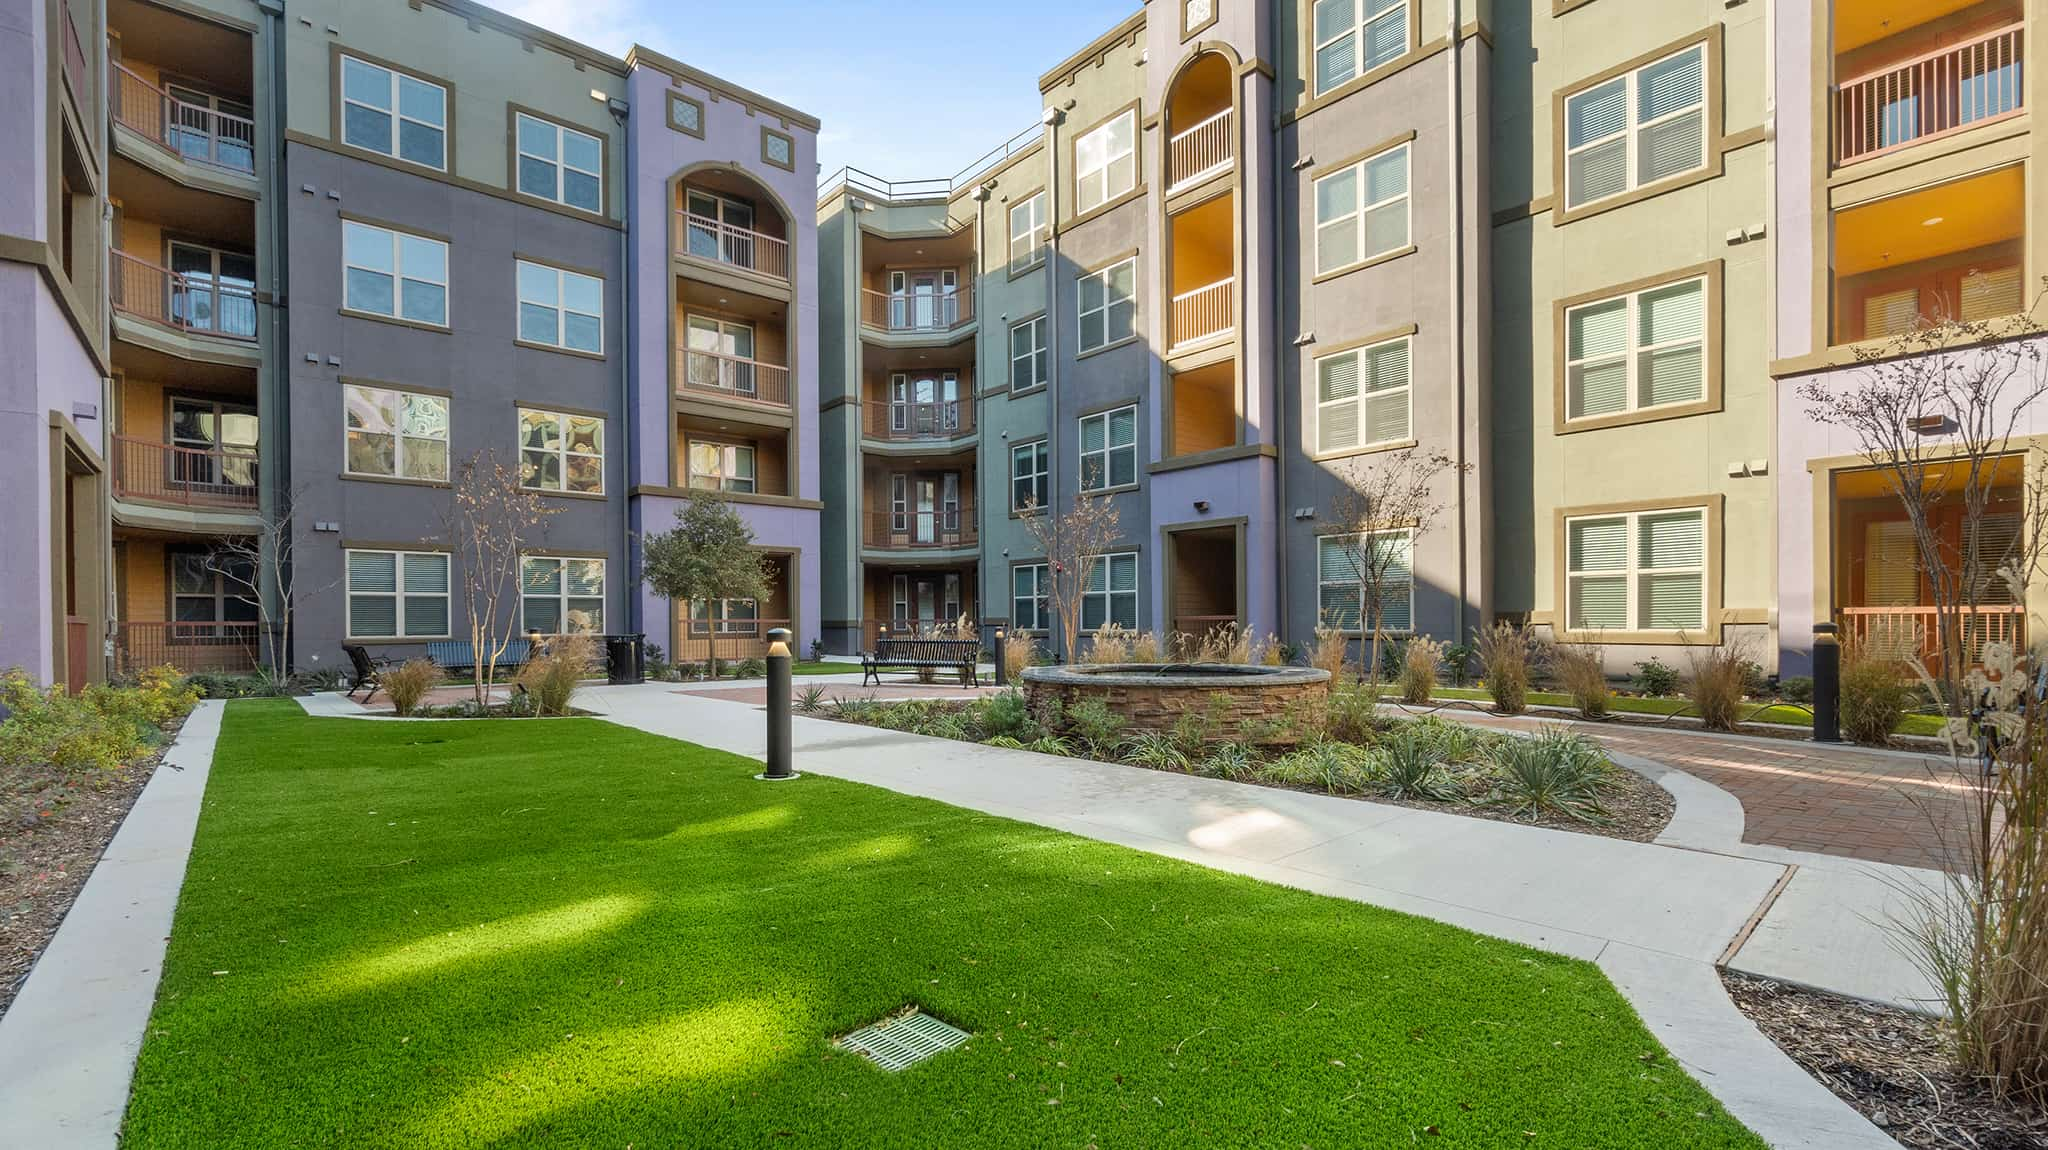 Transcontinental Realty Investors Starts Lease-Up at 256-Unit Dominion at Mercer Crossing Apartments in Farmers Branch, Texas